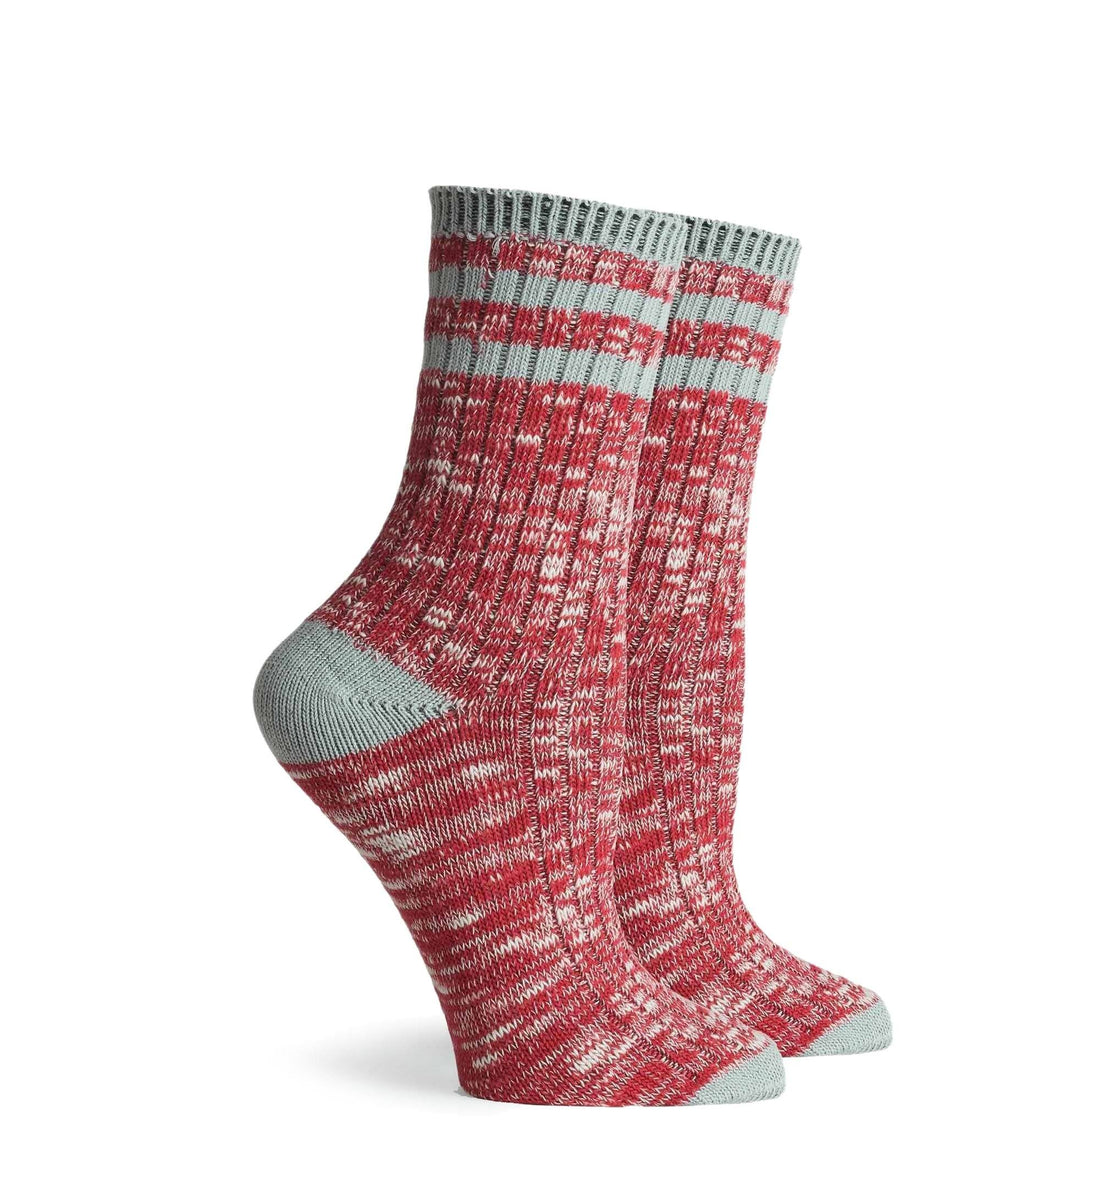 Richer Poorer Inc Women's Stitcher Sock - Red Grey - Socks/Underwear - Iron and Resin